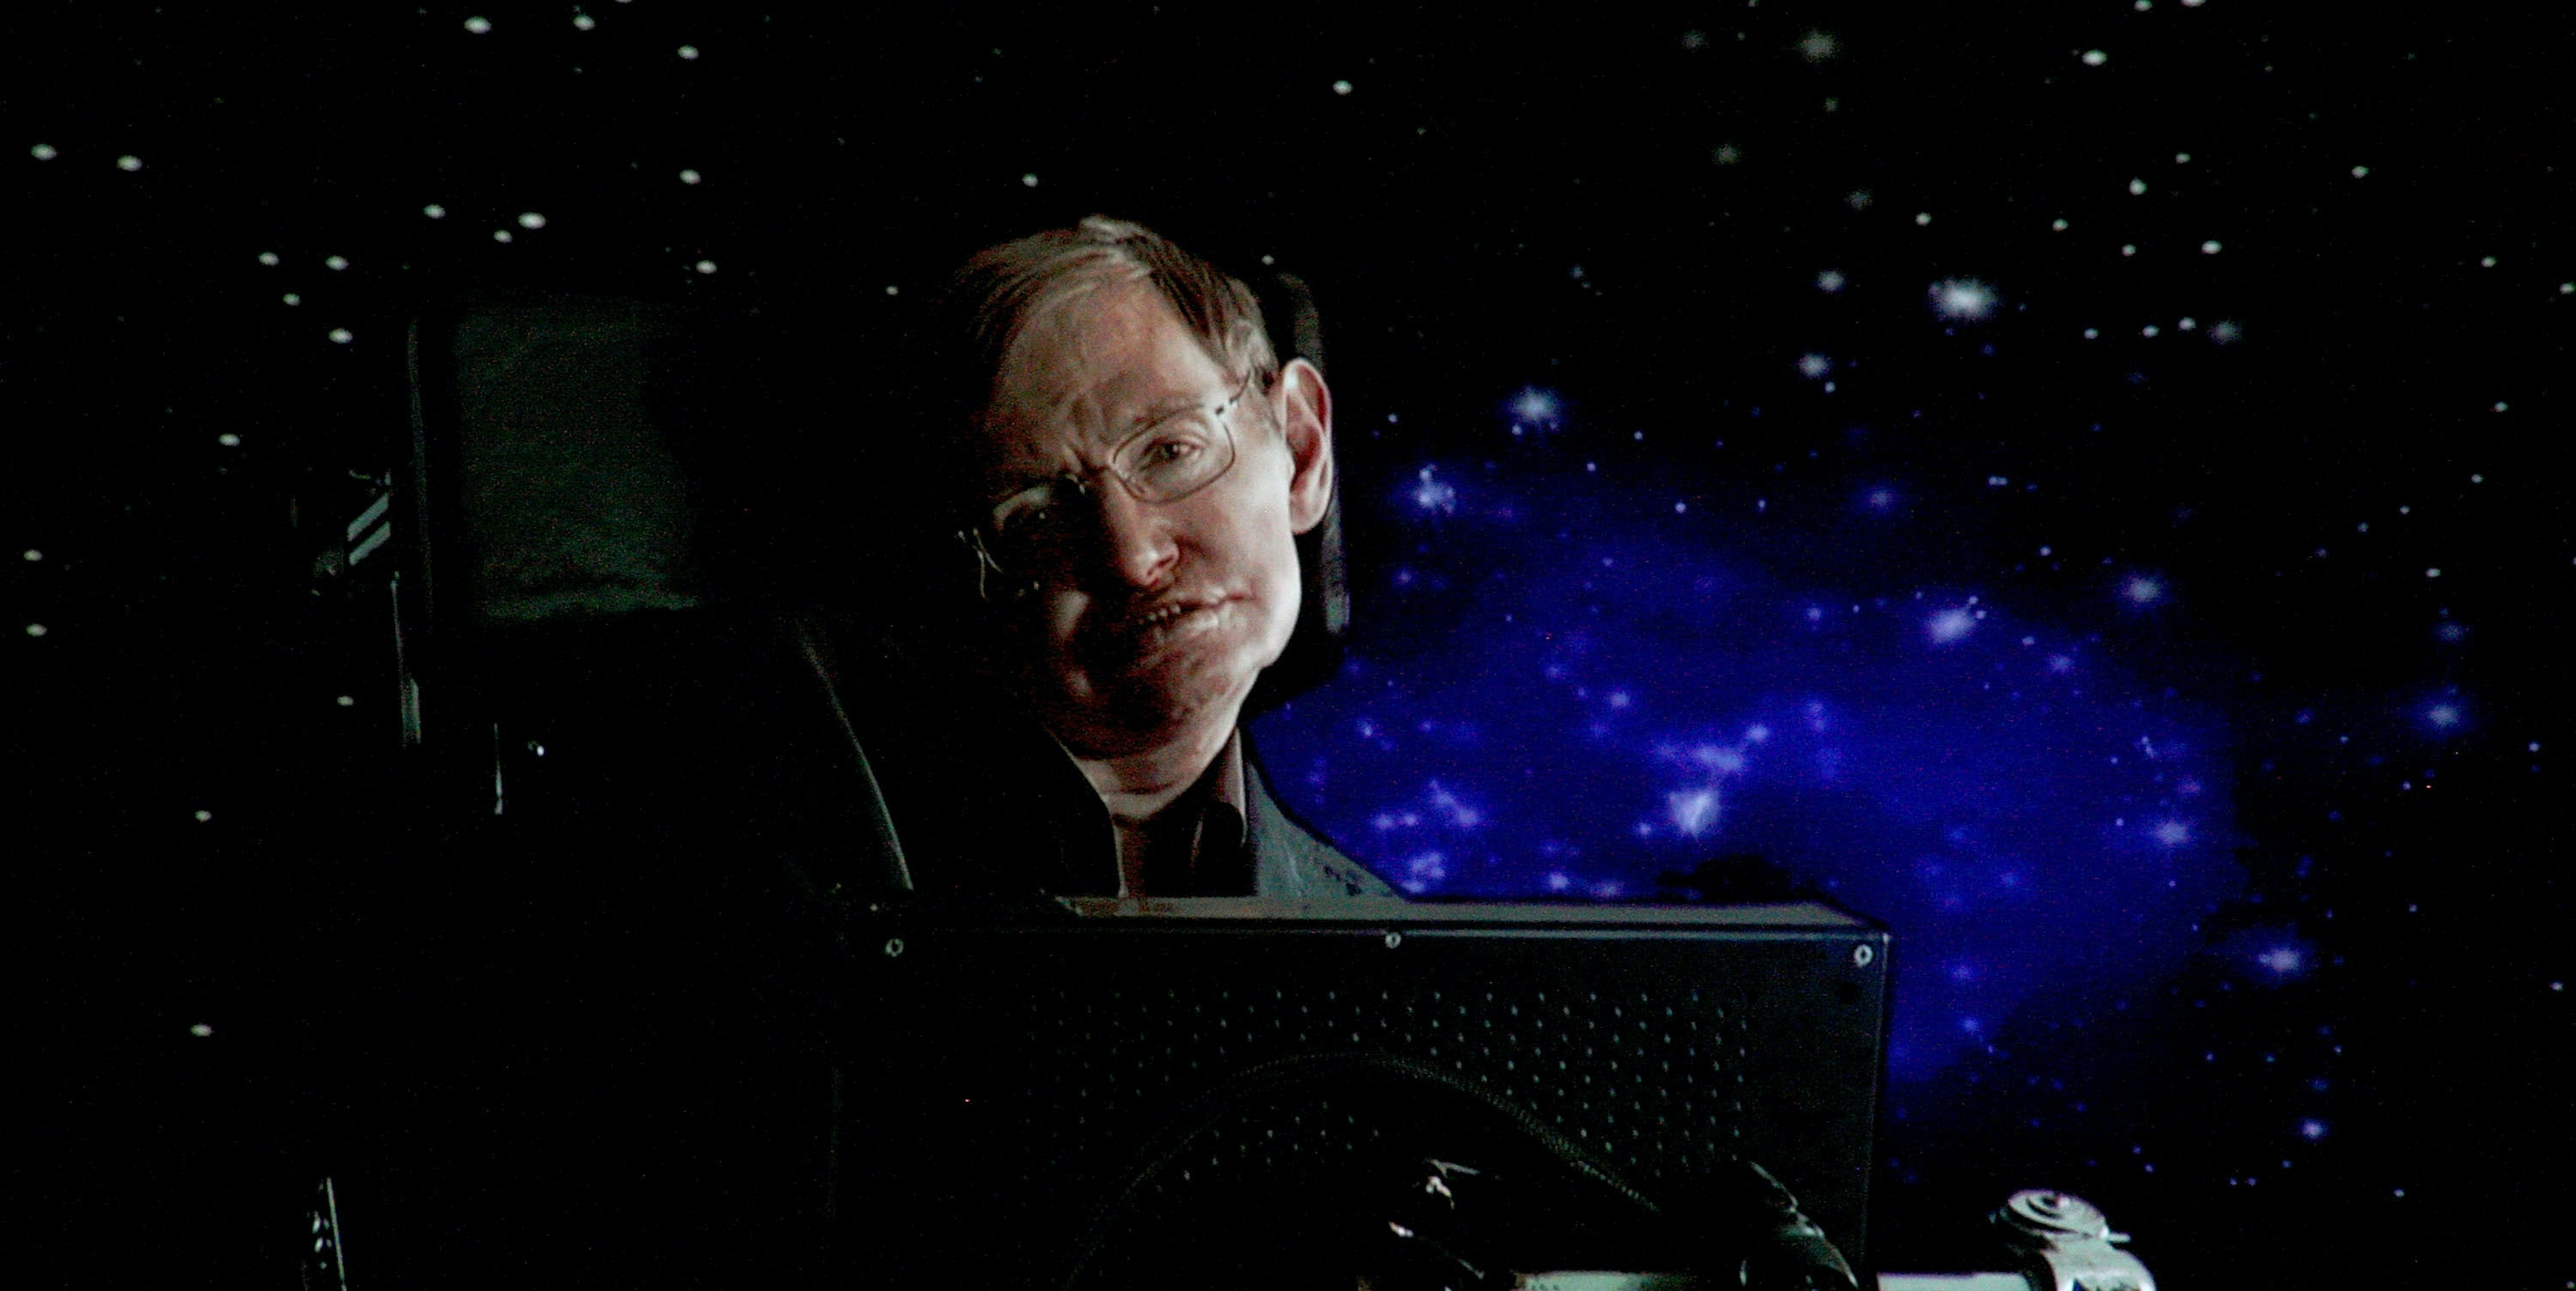 PASADENA, CA - JANUARY 14:  Scientist Stephen Hawking of 'Into The Universe With Stephen Hawking' speaks via satellite during the Science Channel portion of the 2010 Television Critics Association Press Tour at the Langham Hotel on January 14, 2010 in Pasadena, California.  (Photo by Frederick M. Brown/Getty Images)